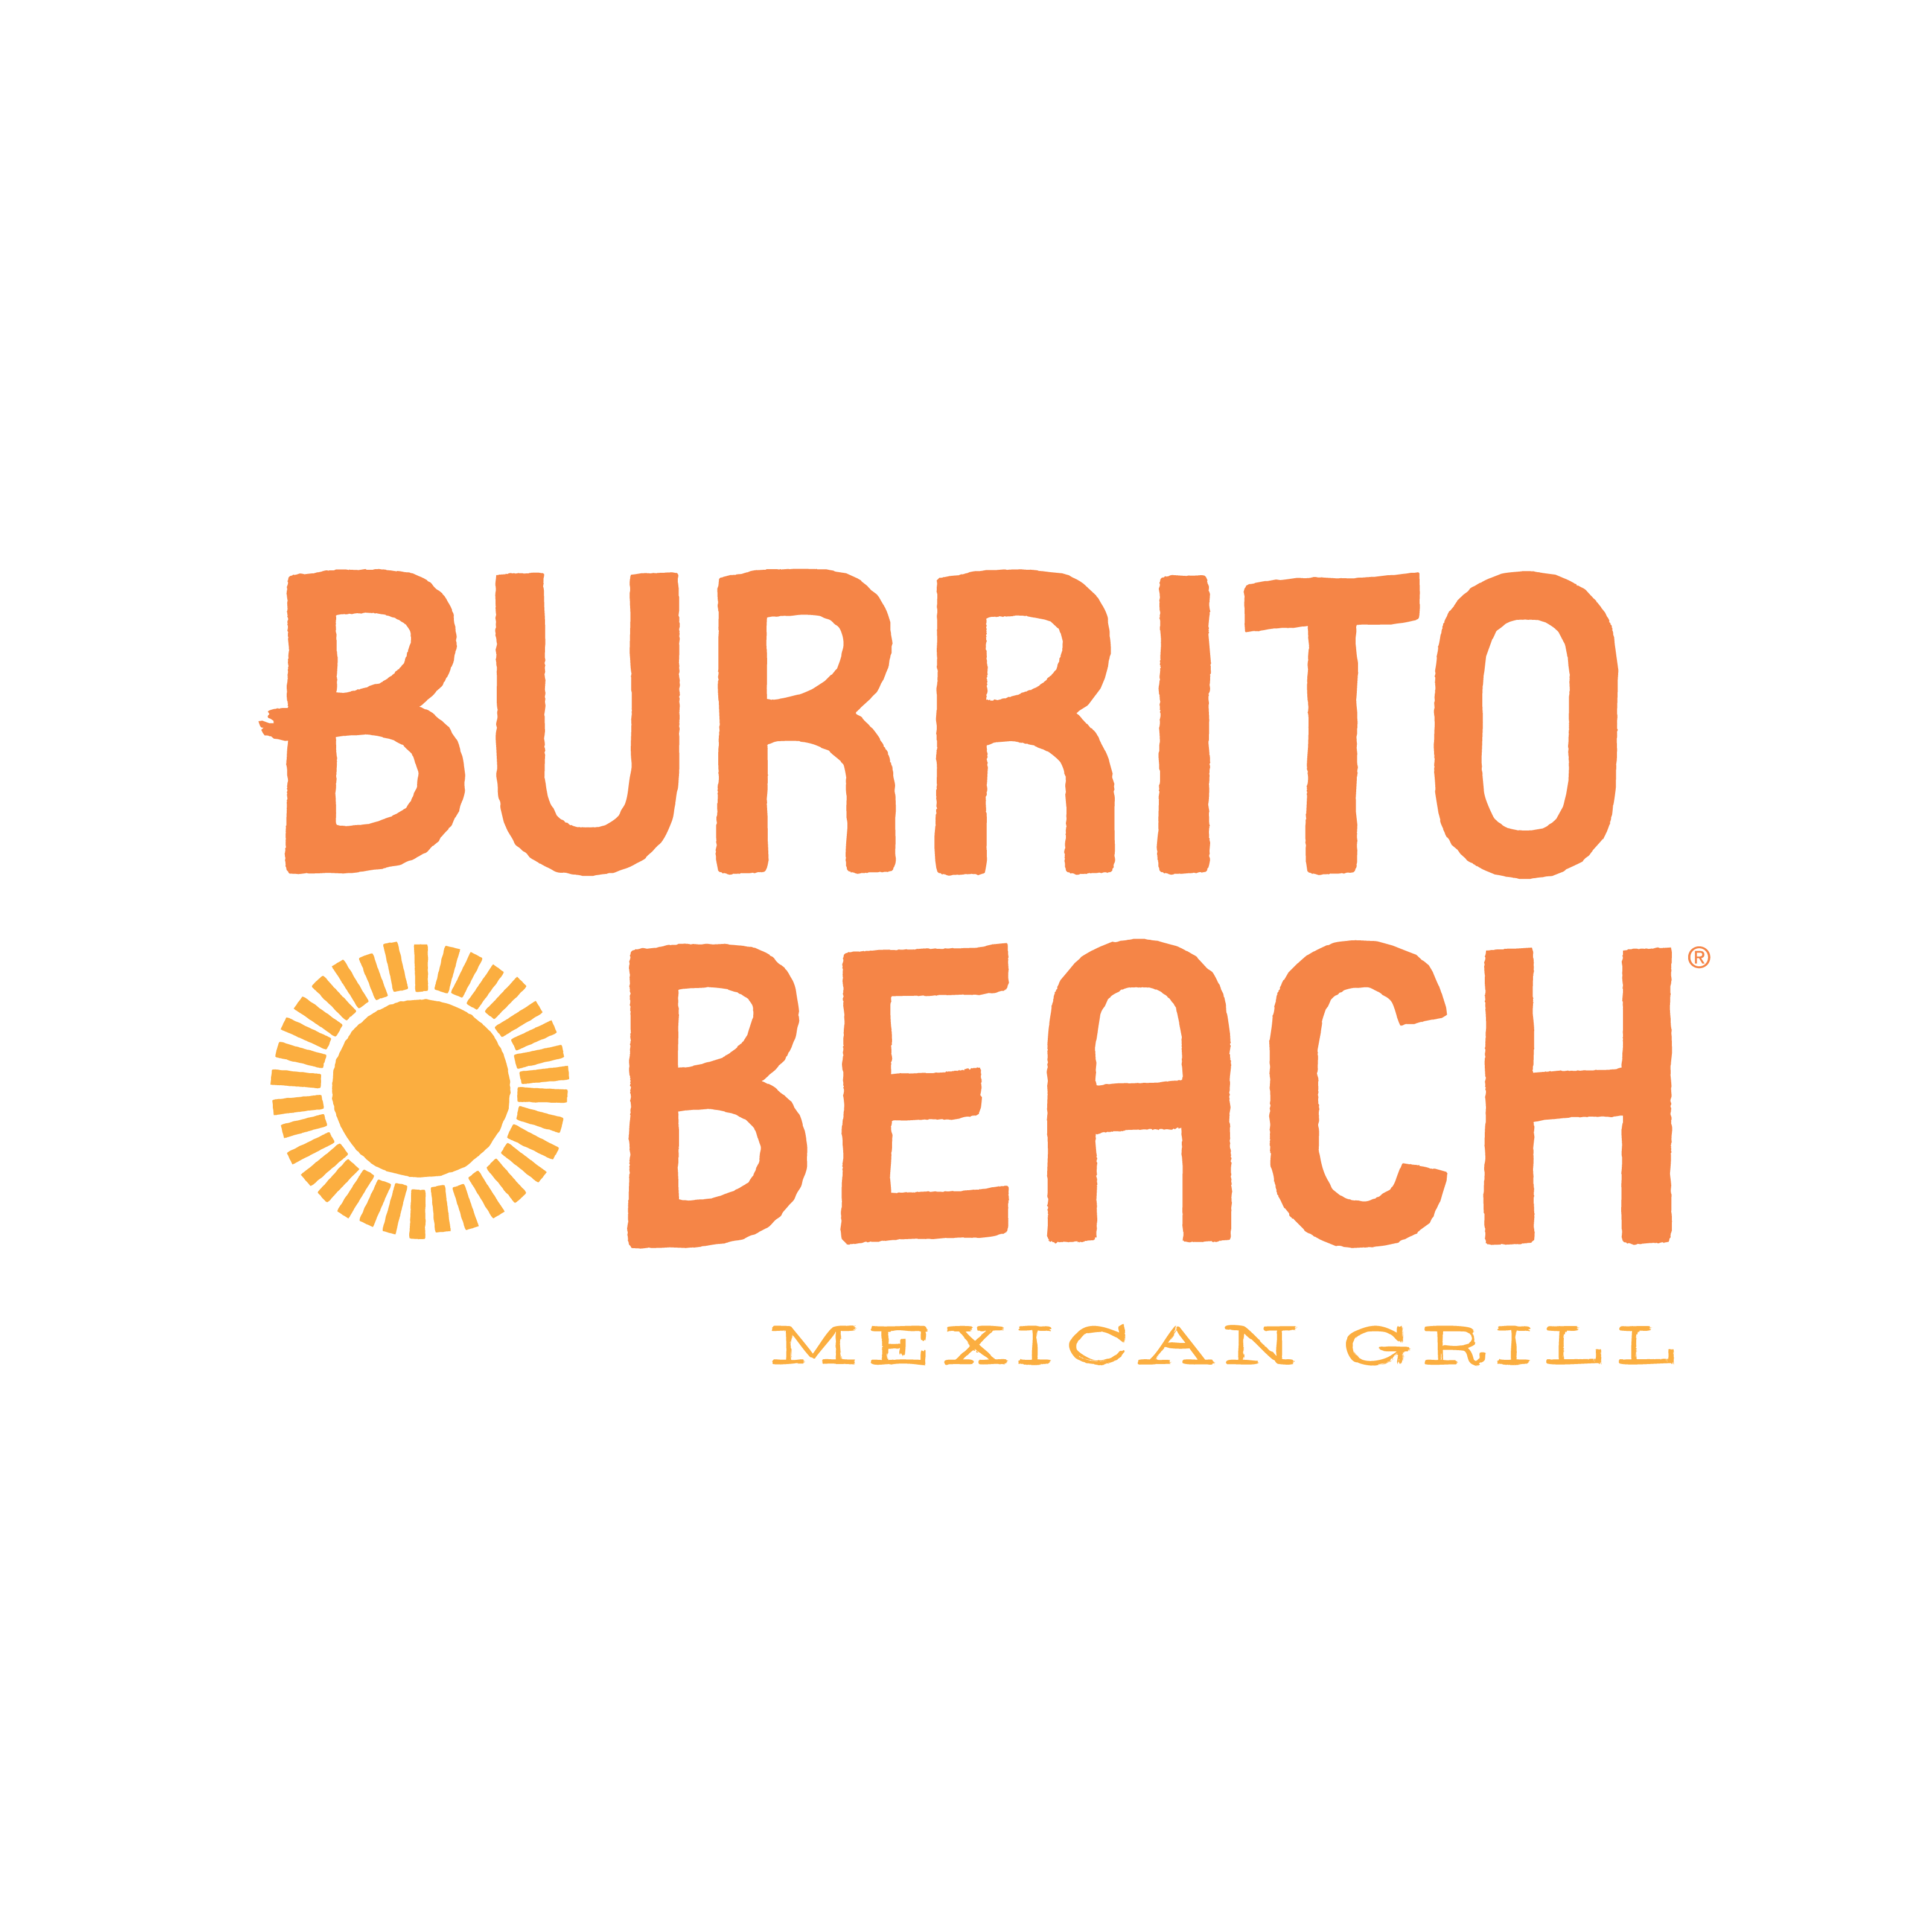 Burrito Beach - Chicago, IL 60666 - (773)462-0190 | ShowMeLocal.com